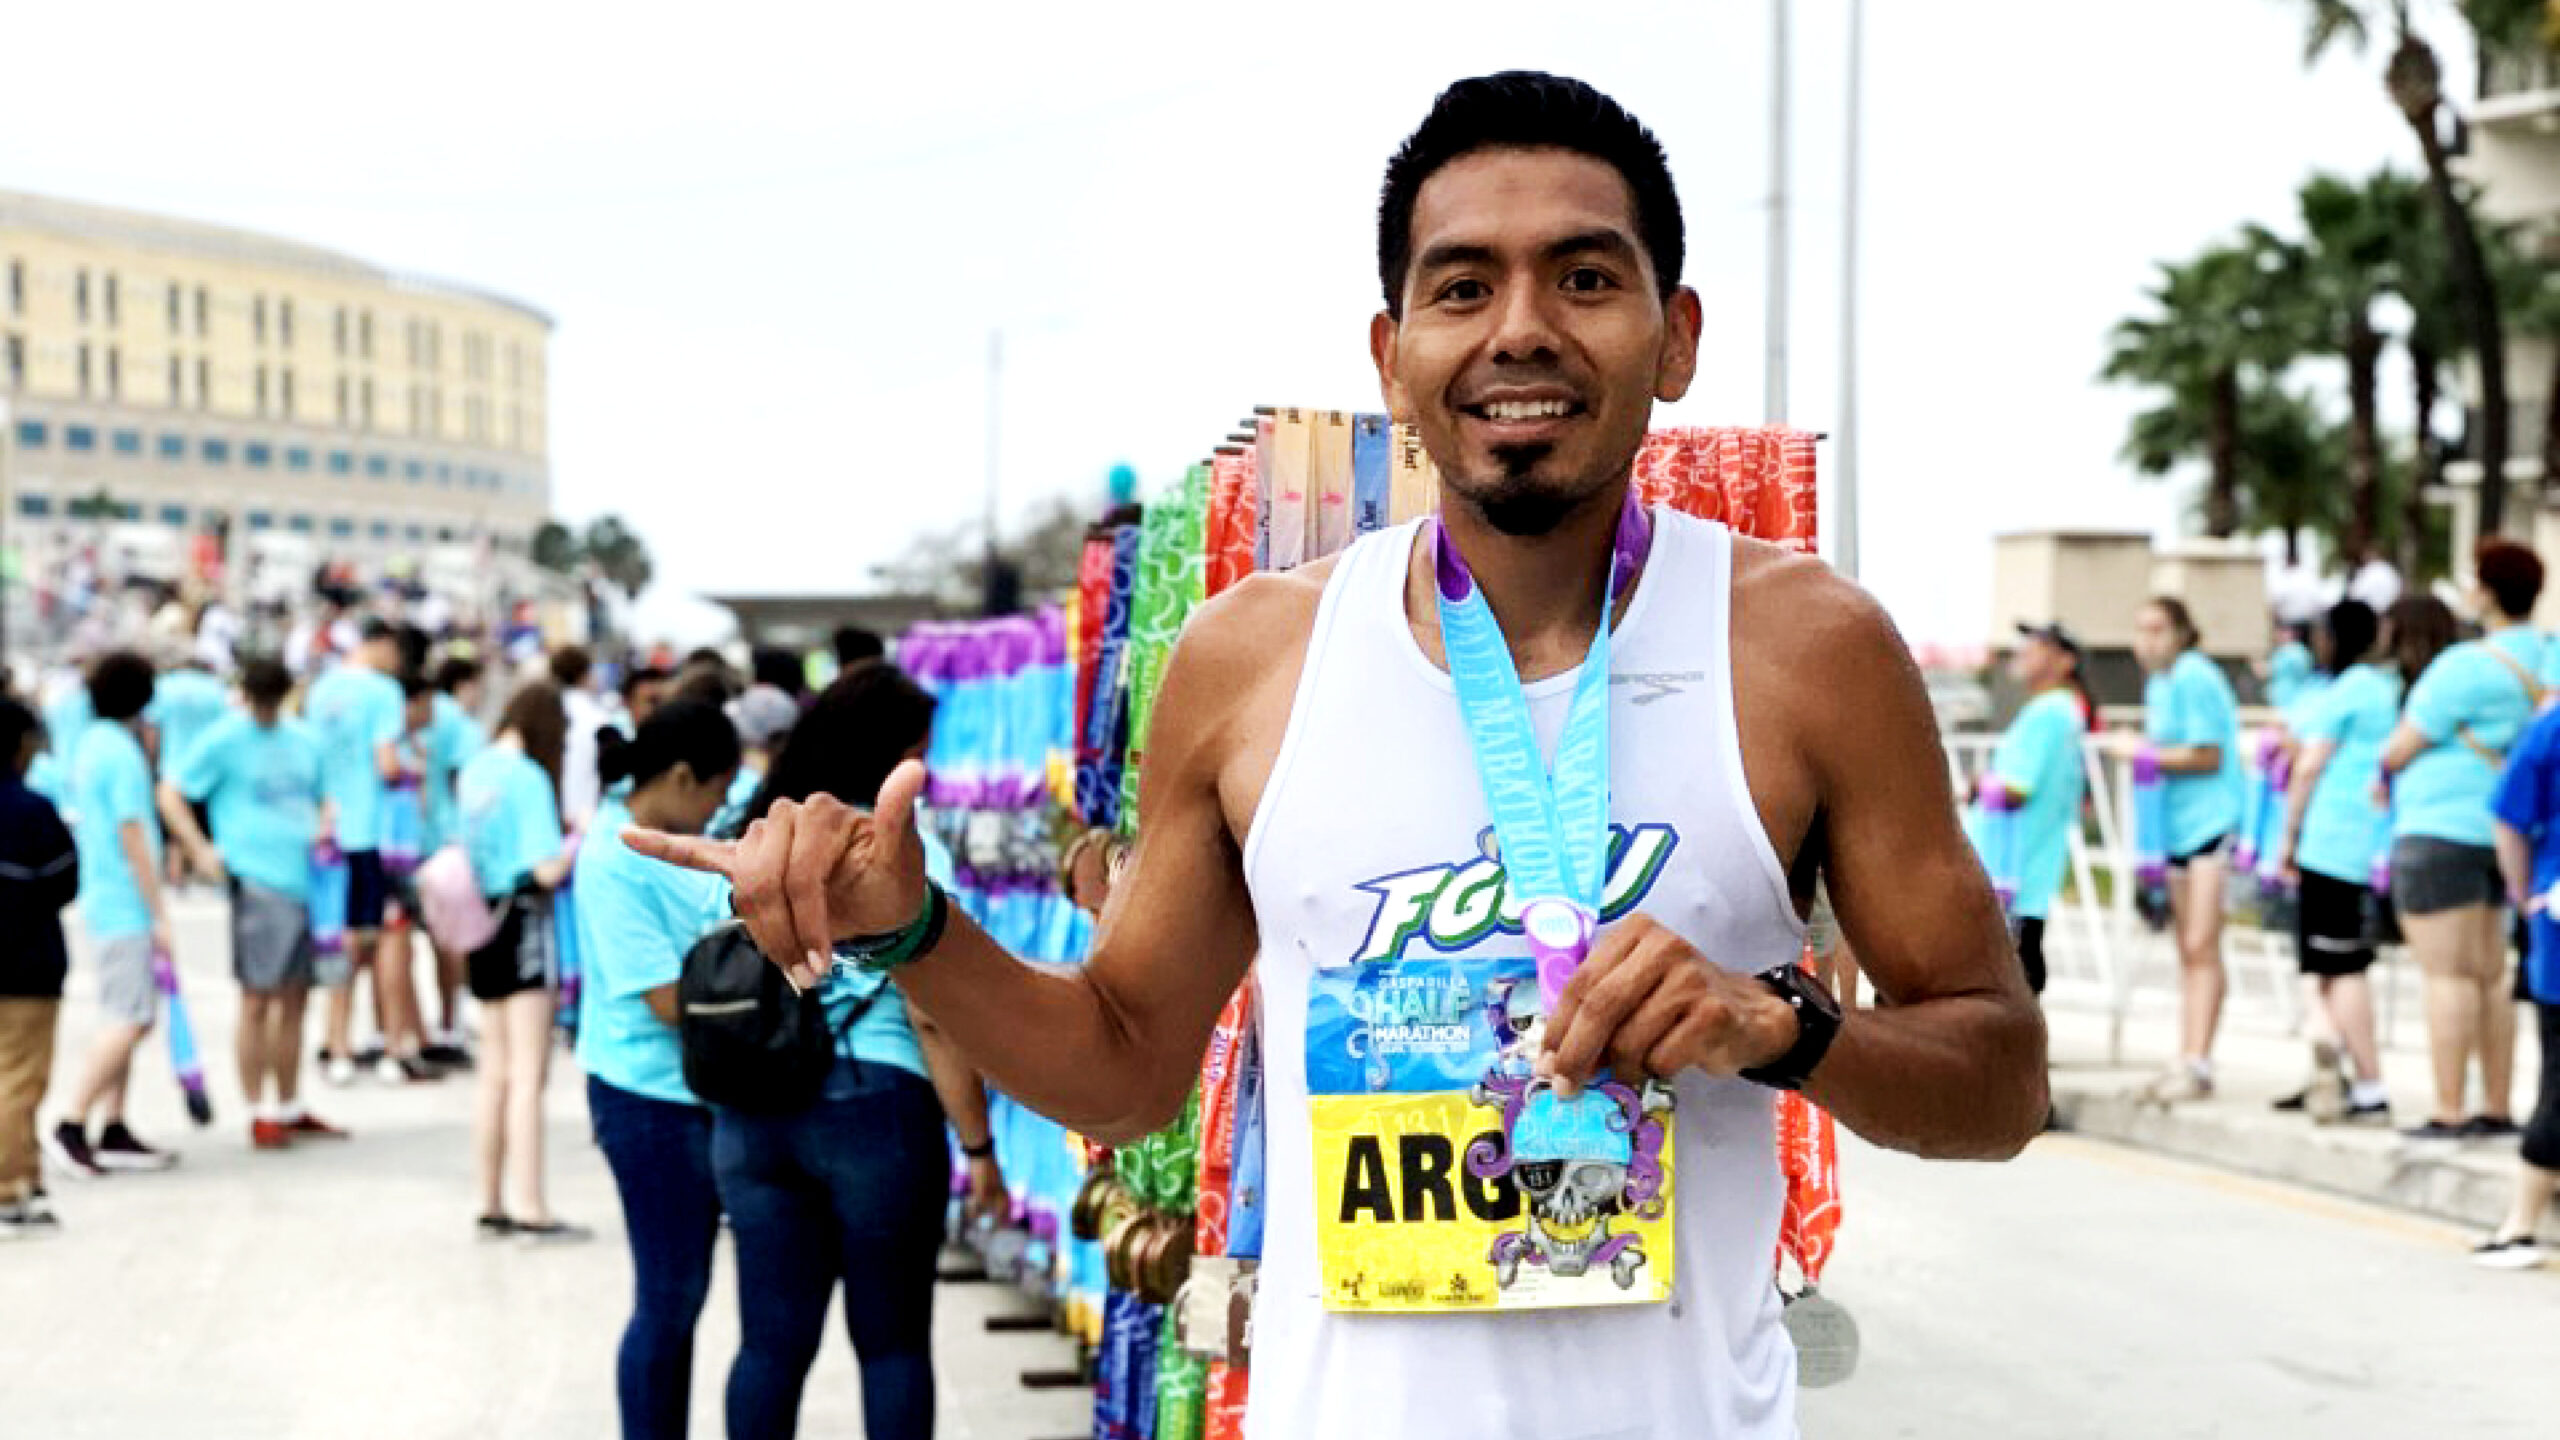 Argeo Cruz poses with a medal around his neck after finishing a race. (Photo courtesy Argeo Cruz)